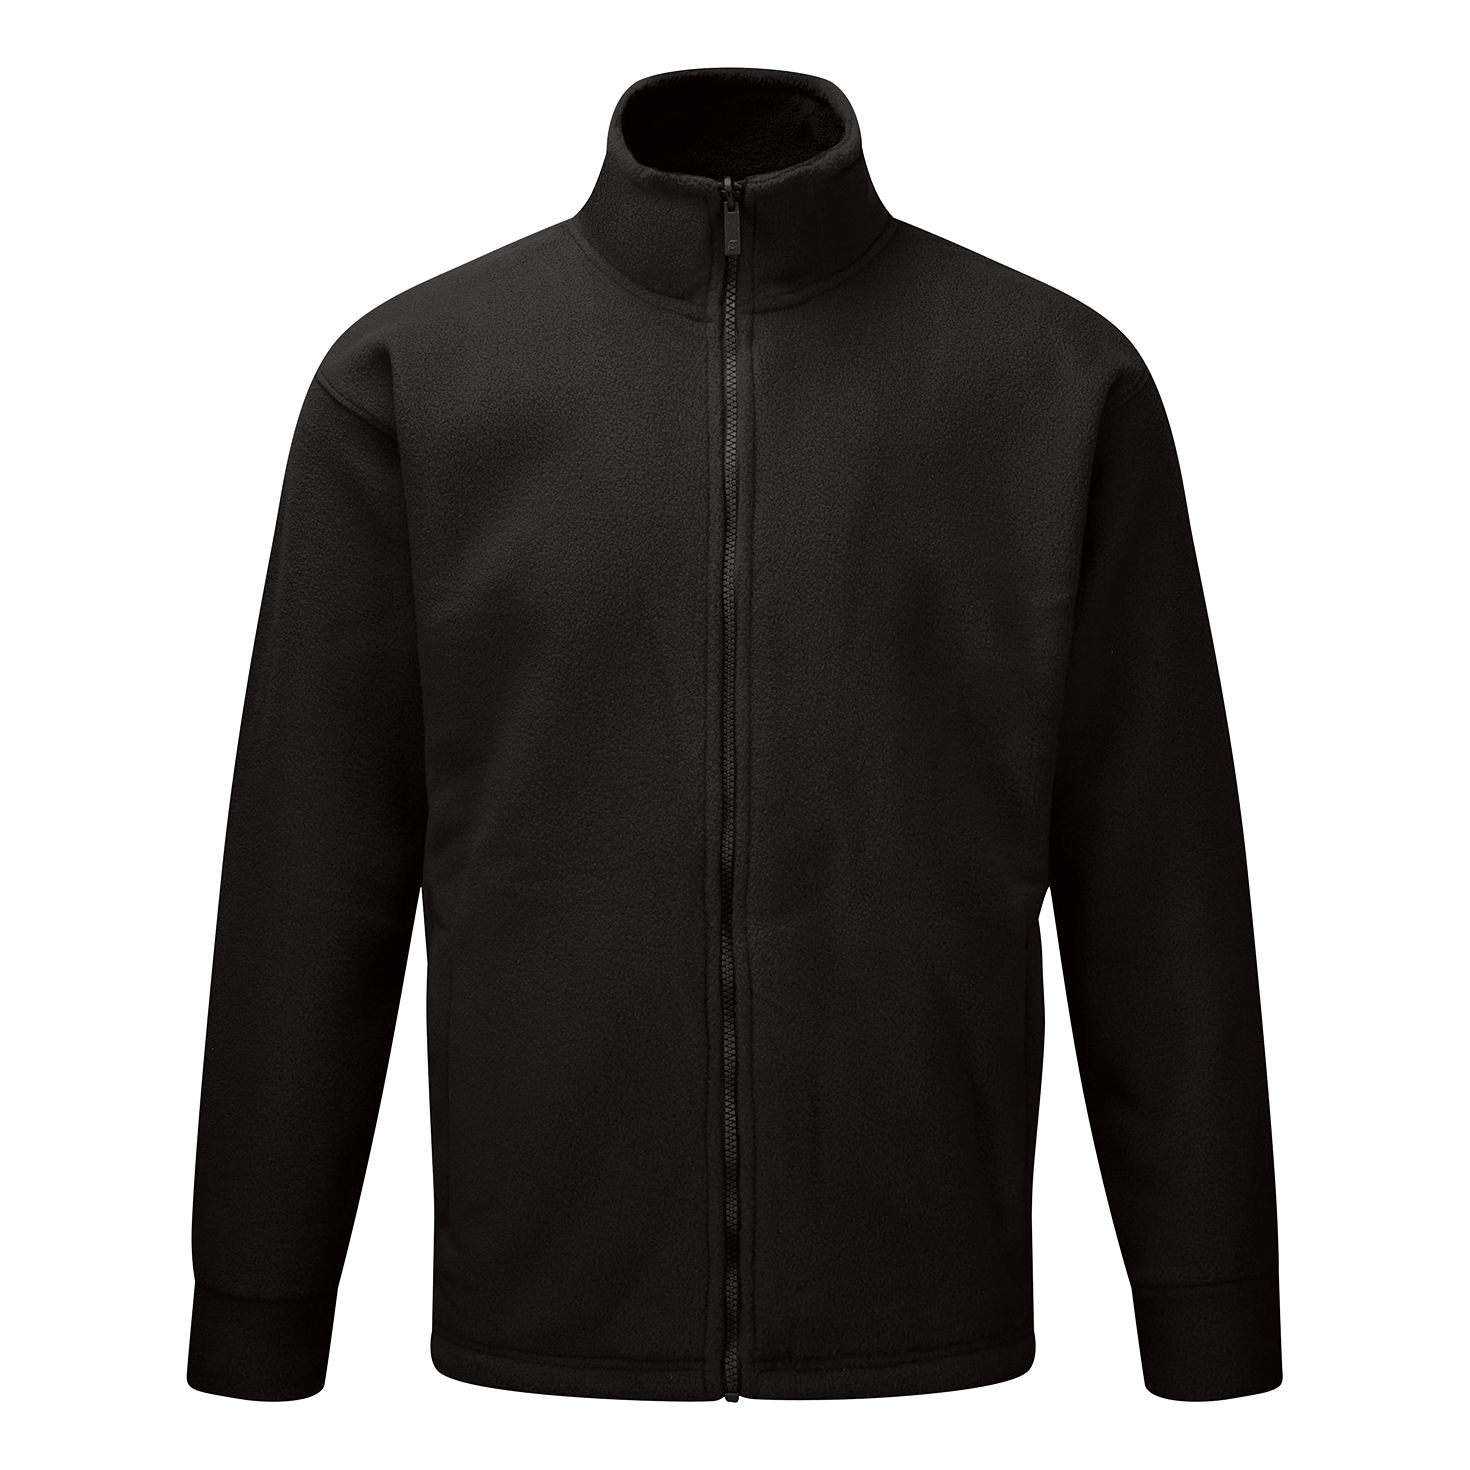 Classic Fleece Jacket Elasticated Cuffs Full Zip Front 4XL Black Ref FLJBL4XL *1-3 Days Lead Time*